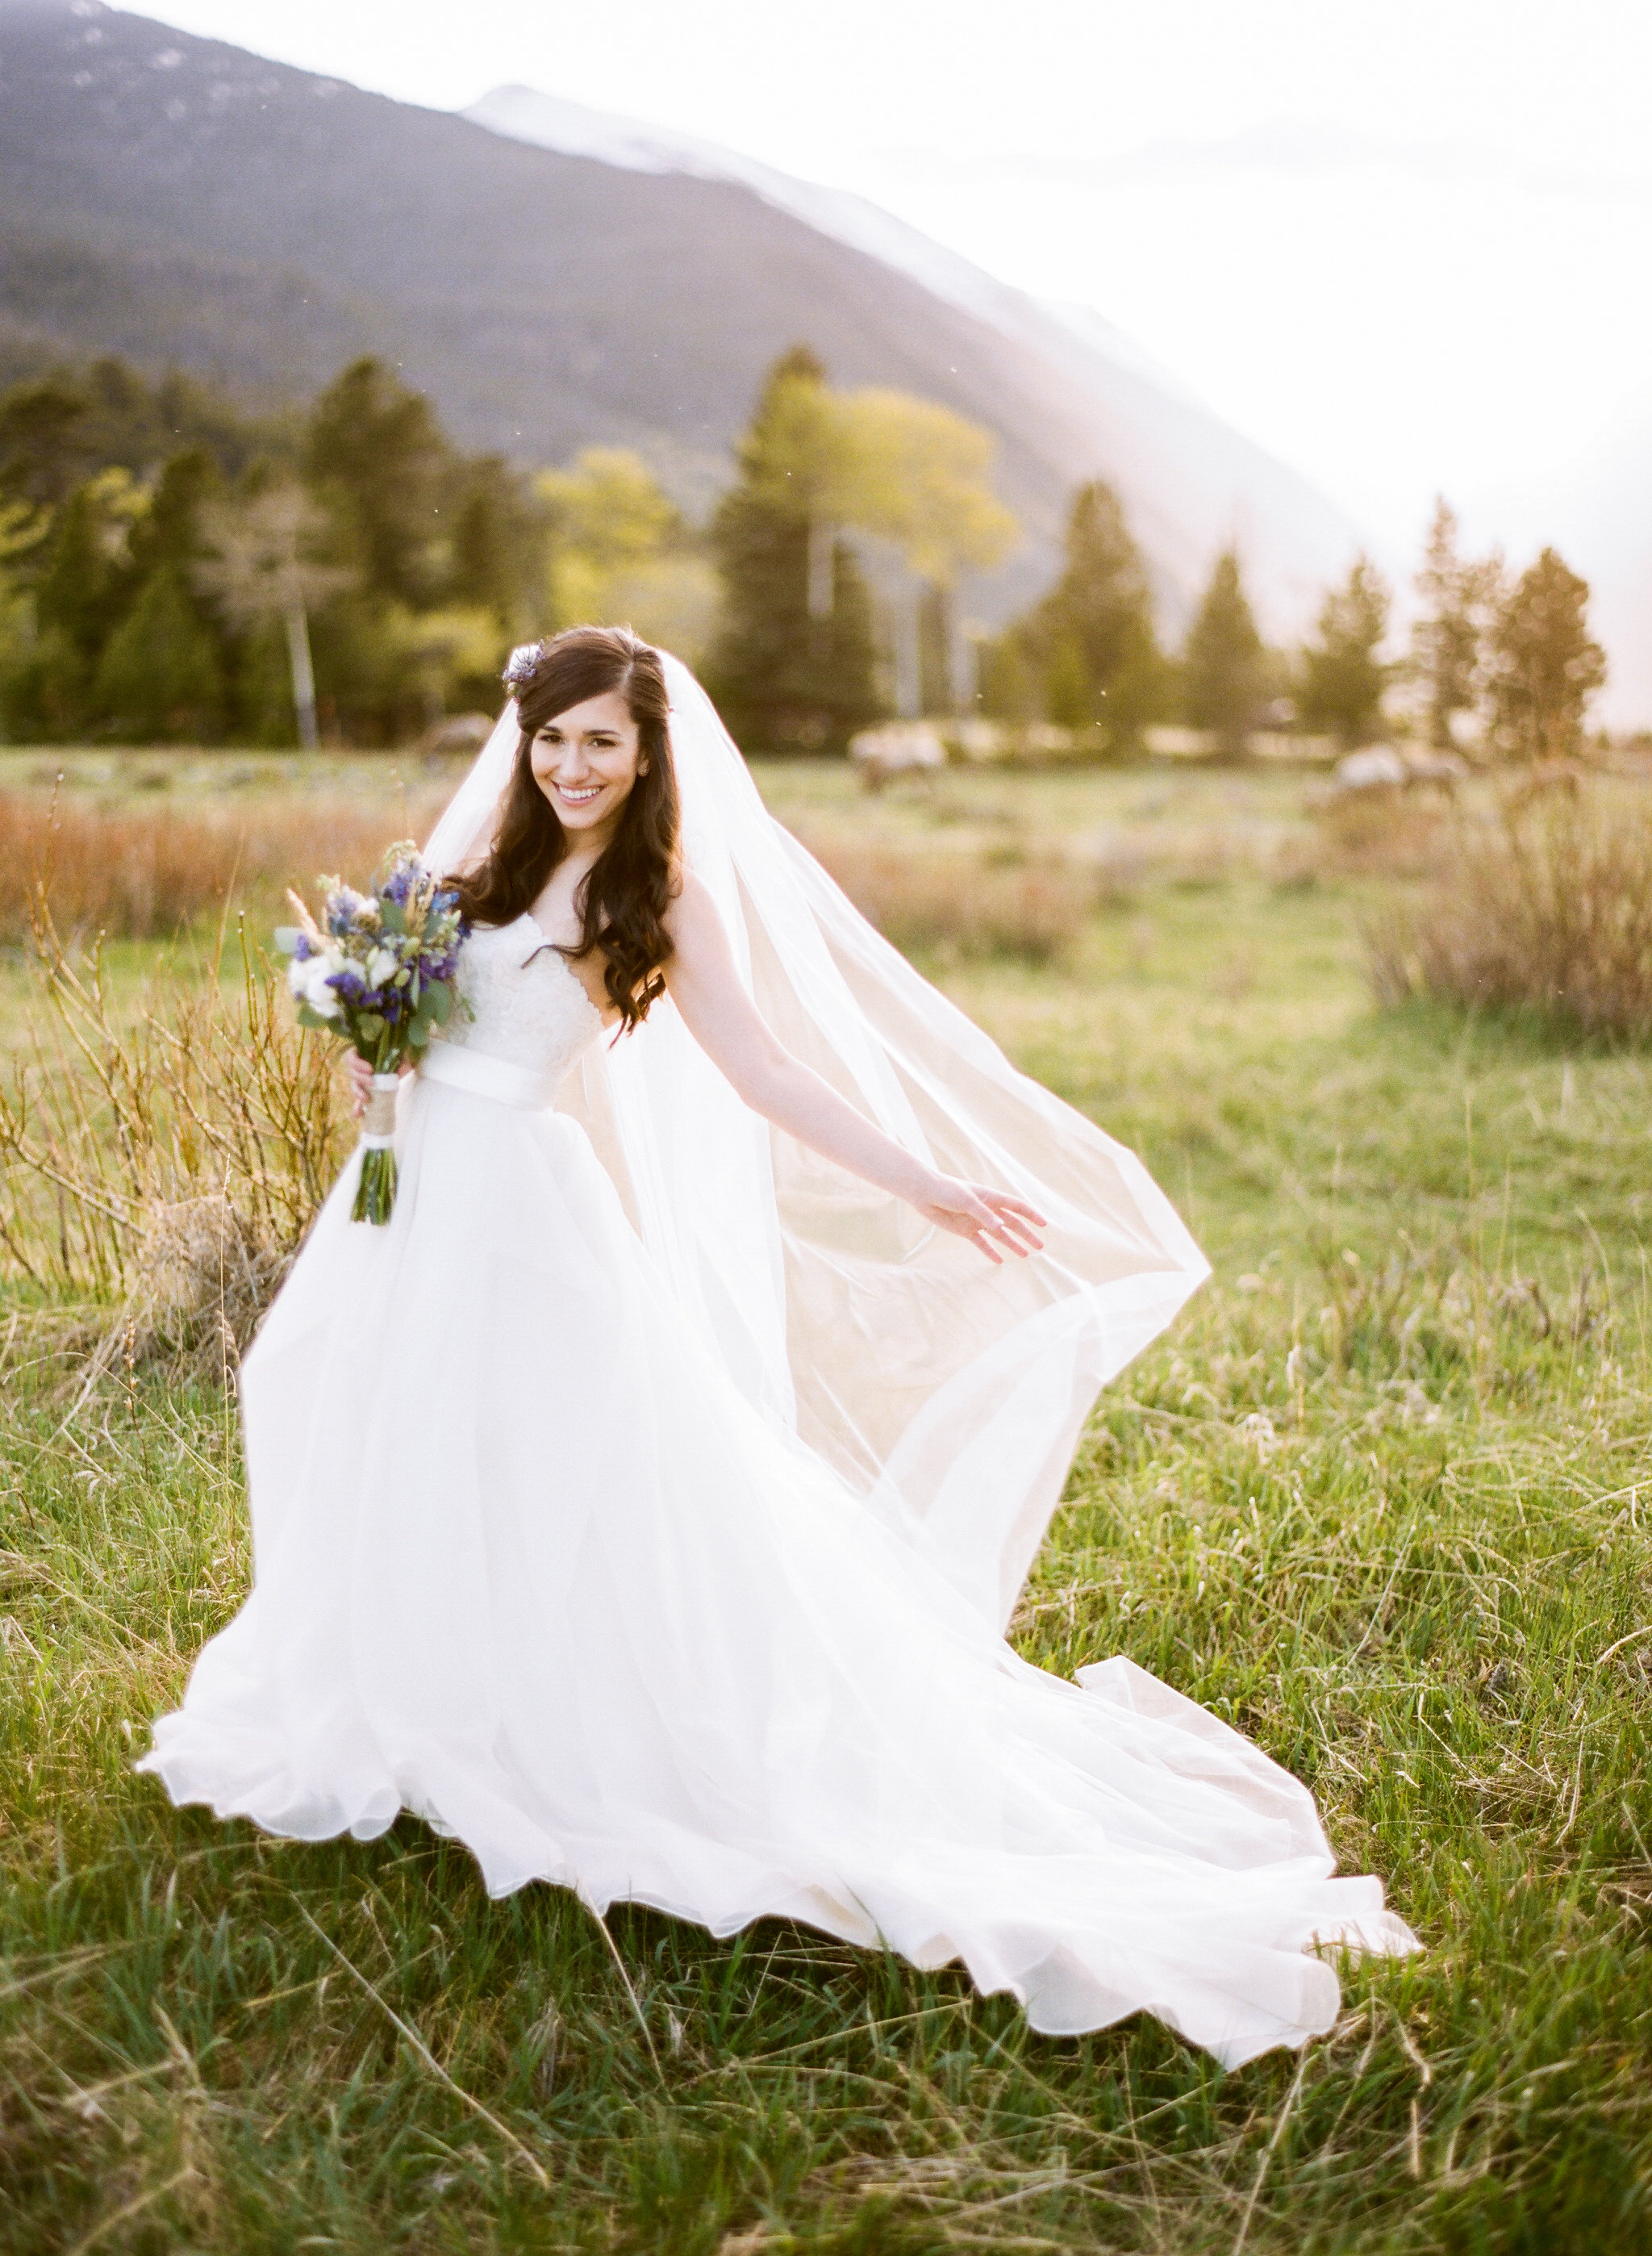 melisa-jackson-asheville-mountain-wedding-8.jpg